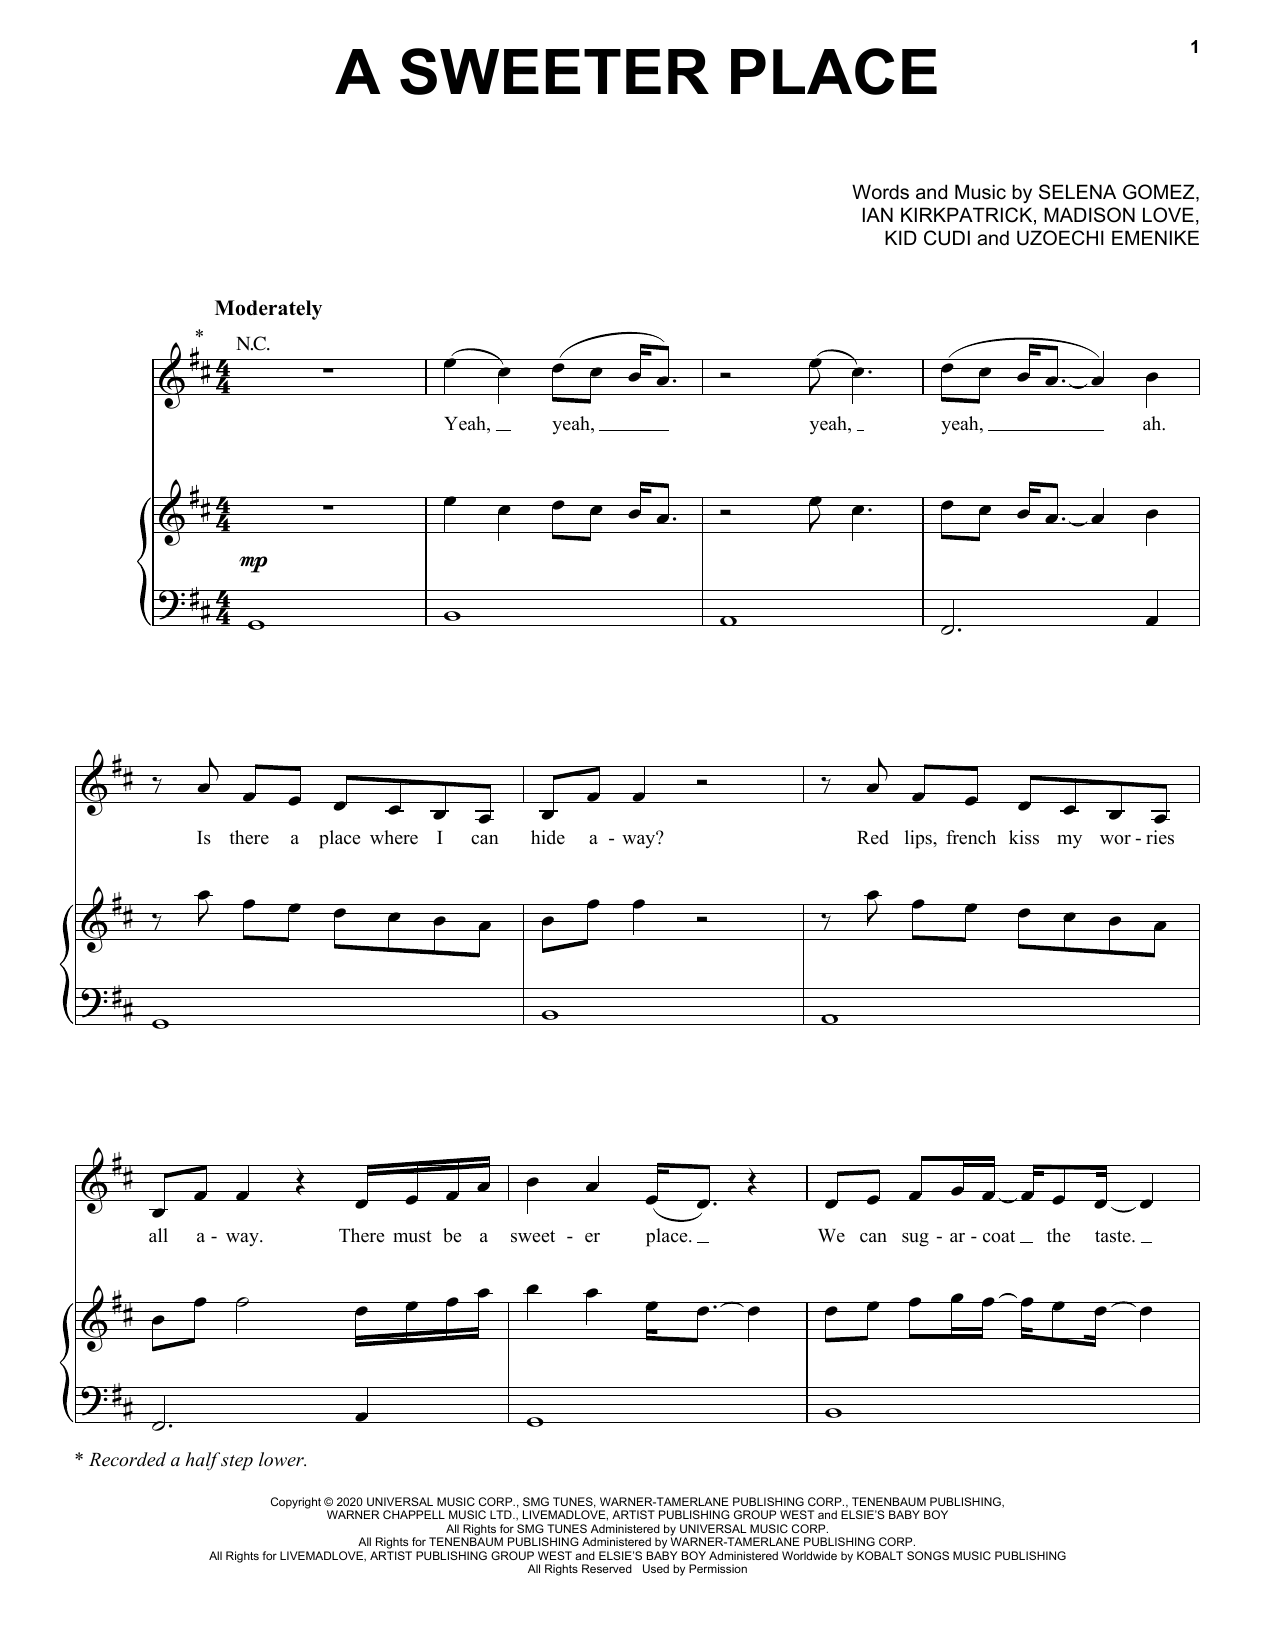 Selena Gomez A Sweeter Place (feat. Kid Cudi) sheet music notes and chords. Download Printable PDF.